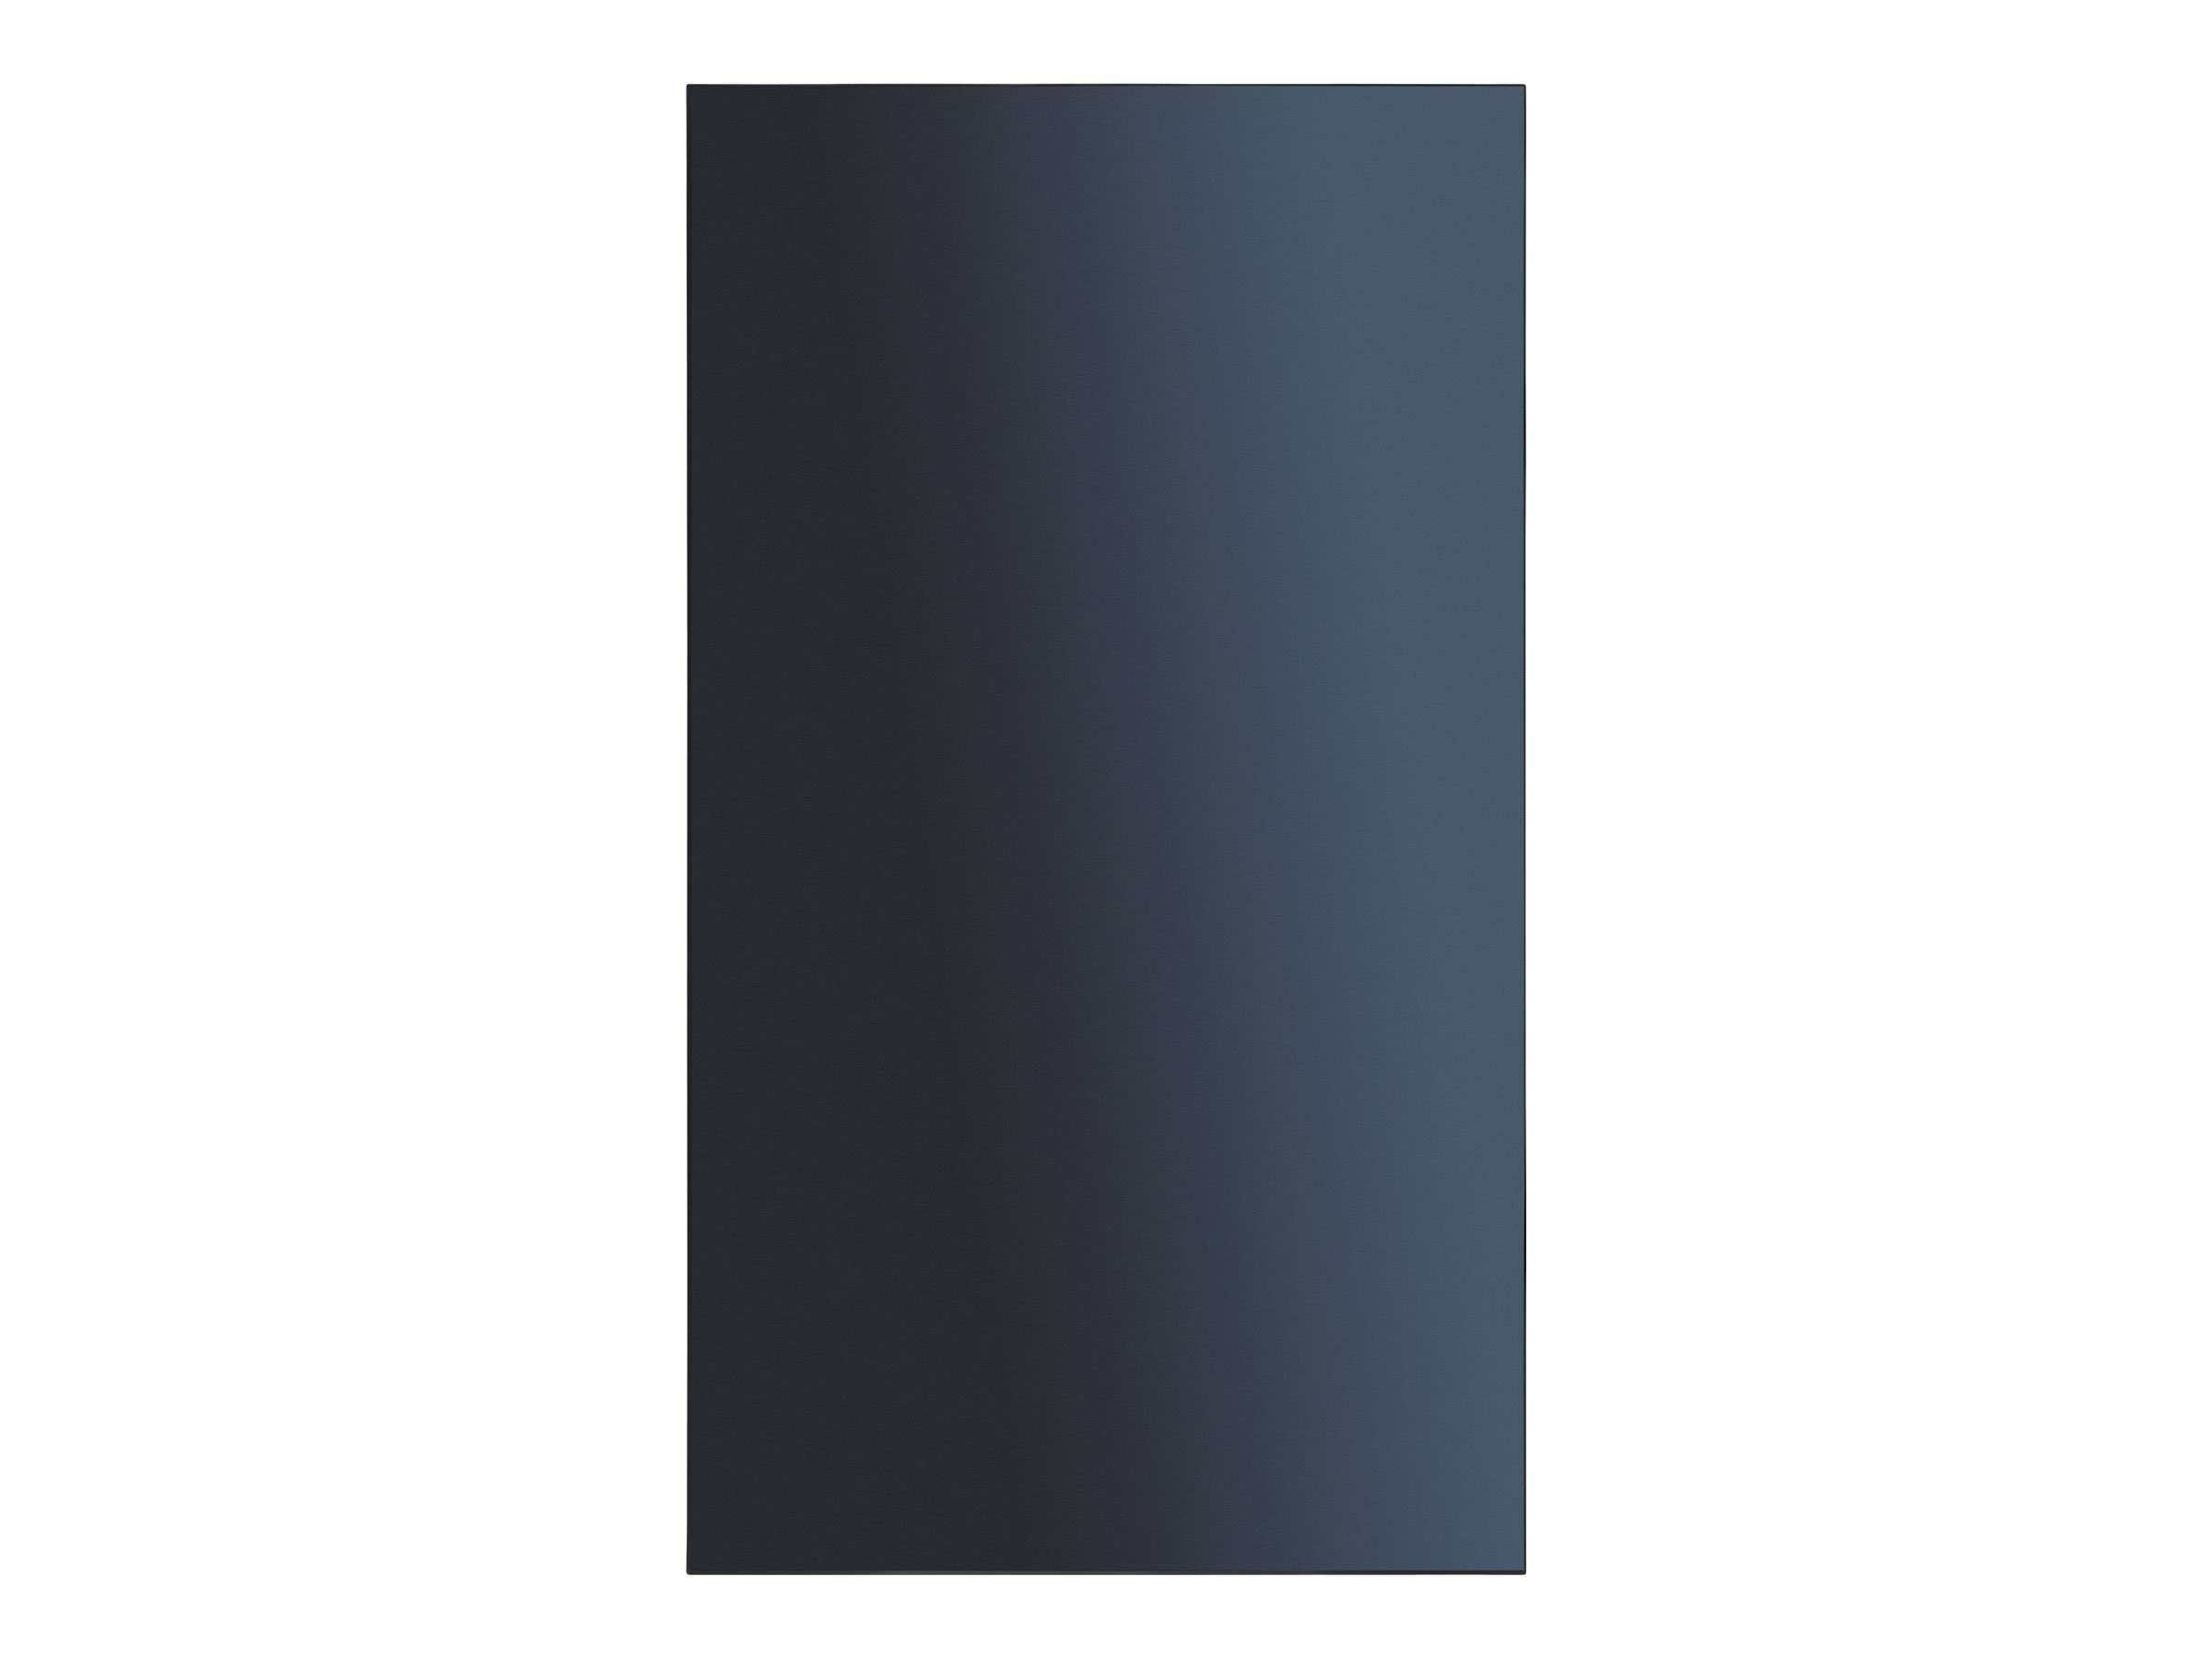 NEC 55 X554UN-2 Full HD LED-LCD Display, Black, X554UN-2, 18164409, Monitors - Large-Format LED-LCD